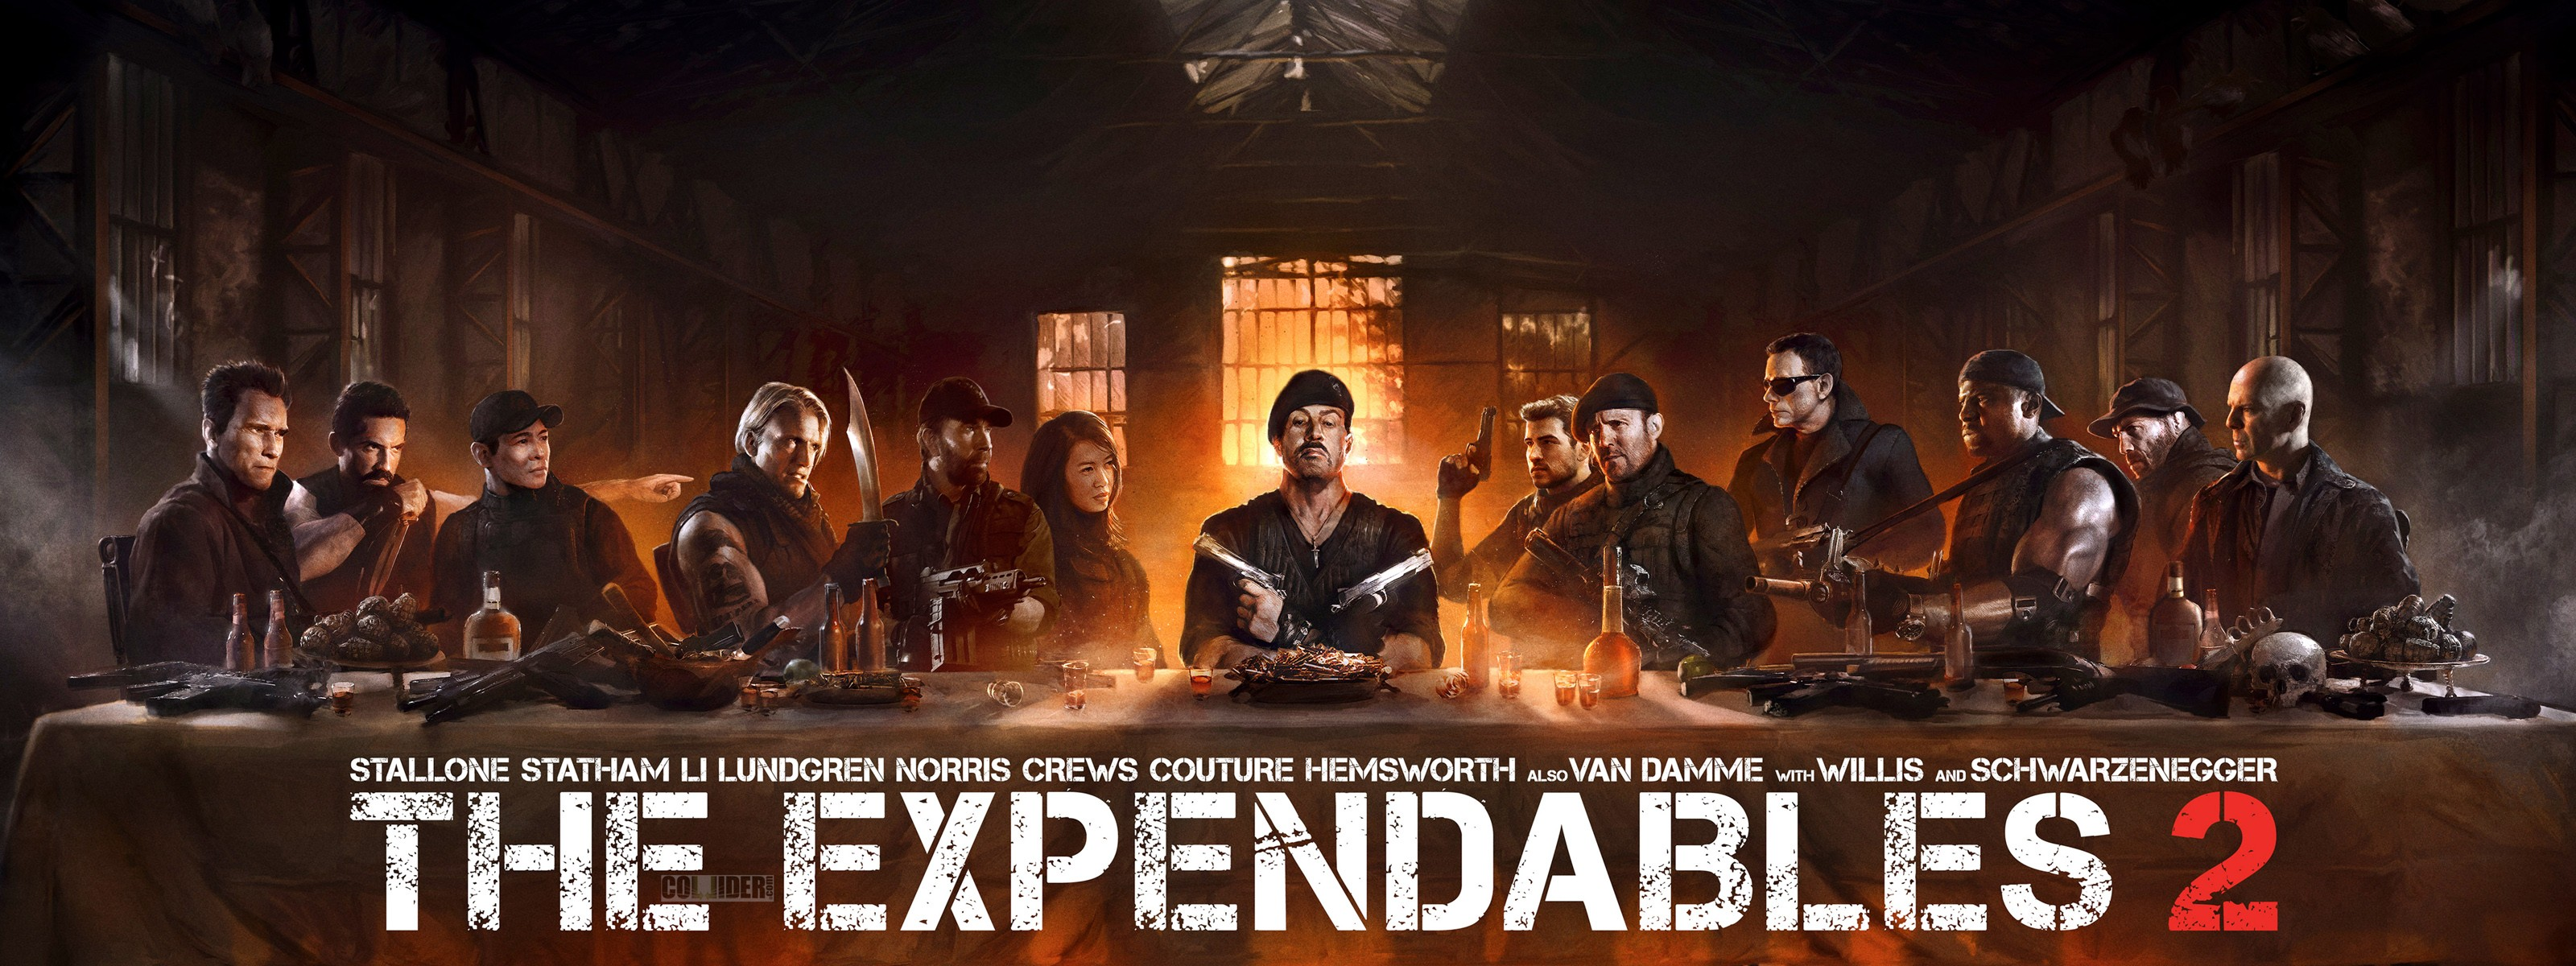 Anime Horror Wallpaper Expendables 2 The Last Supper Wallpapers Hd Wallpapers